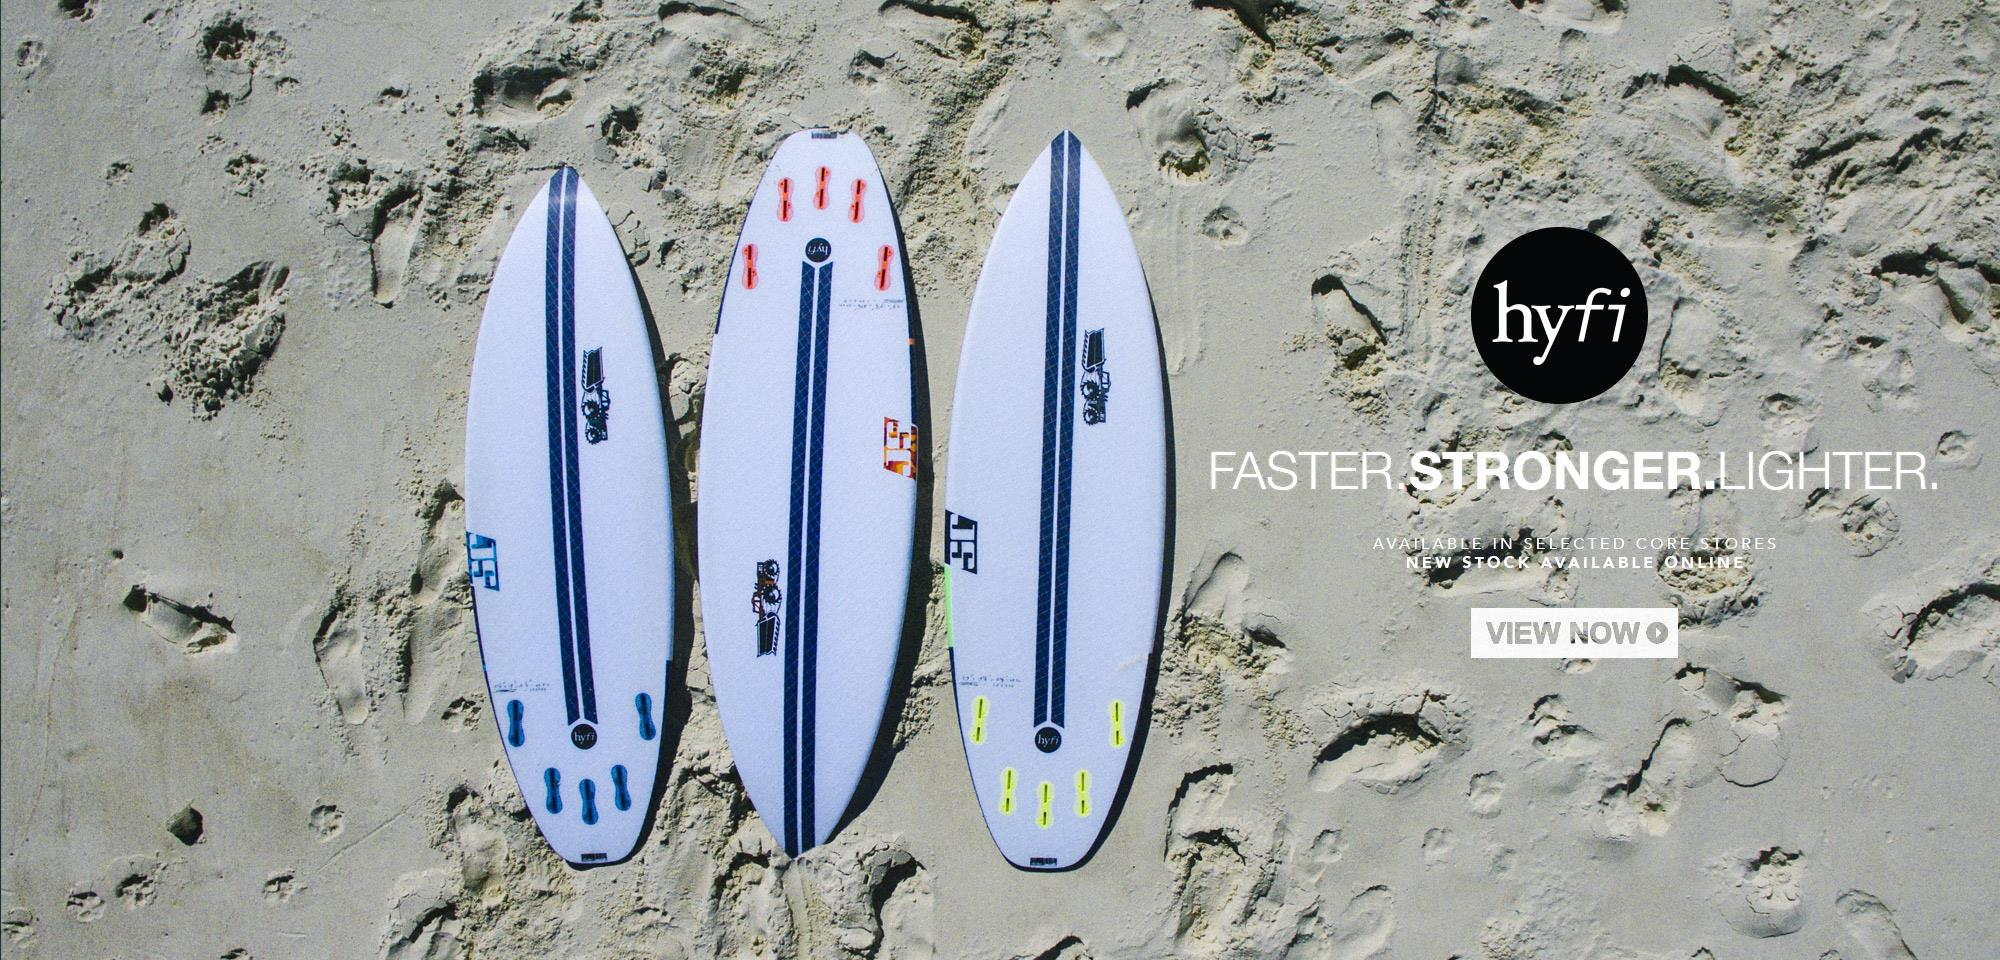 JS HYFI Surfboards NZ